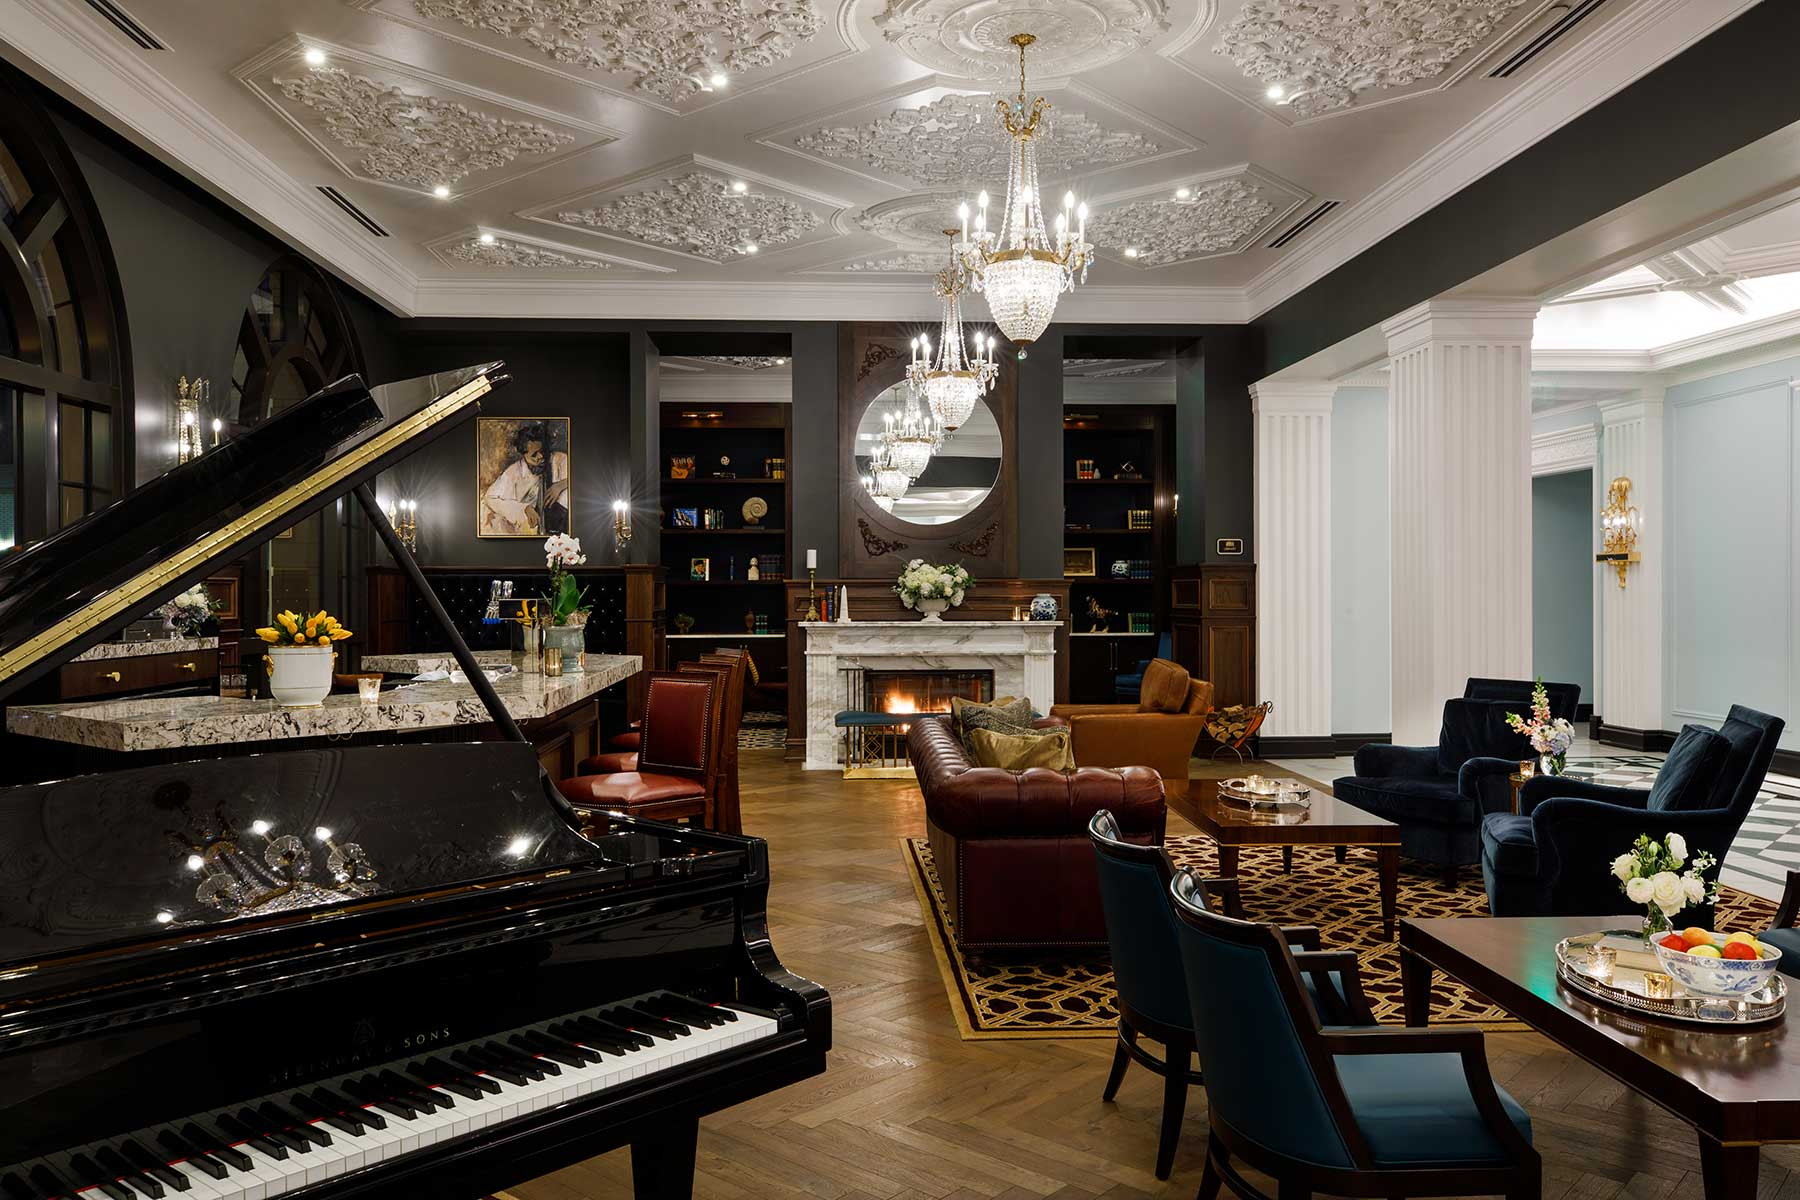 luxury hotel lounge with seating area and grand piano